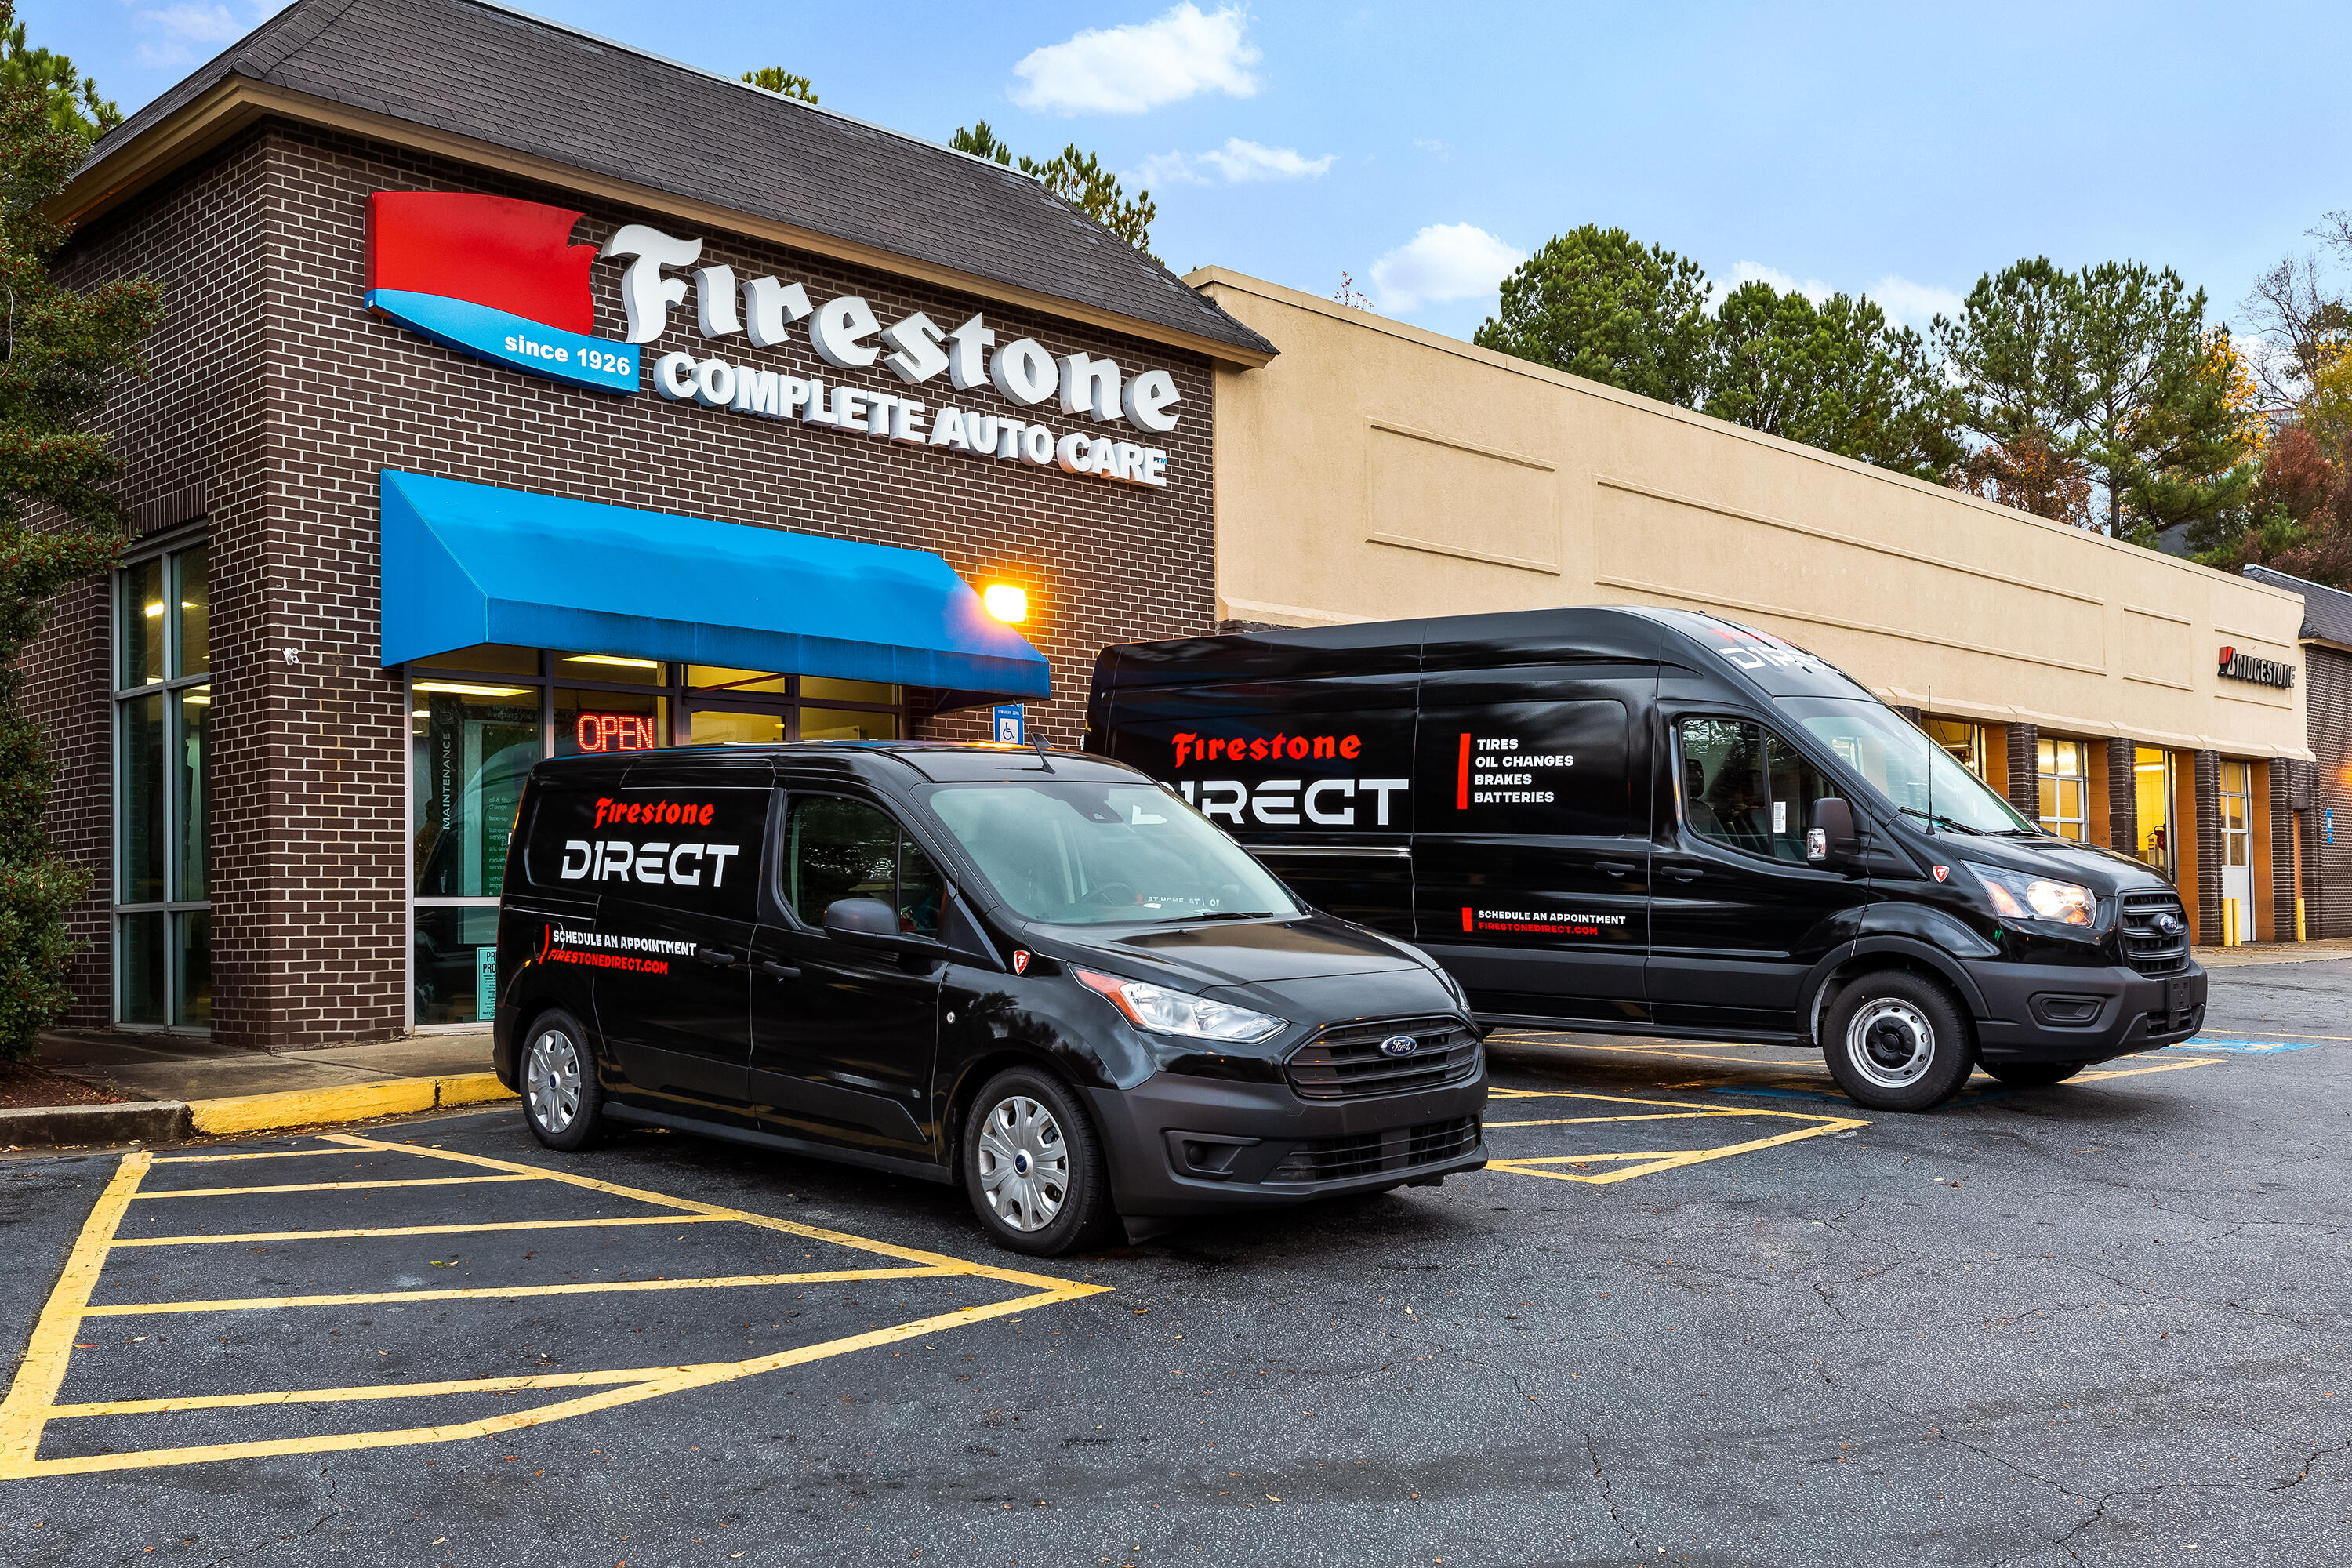 Firestone Direct mobile shop